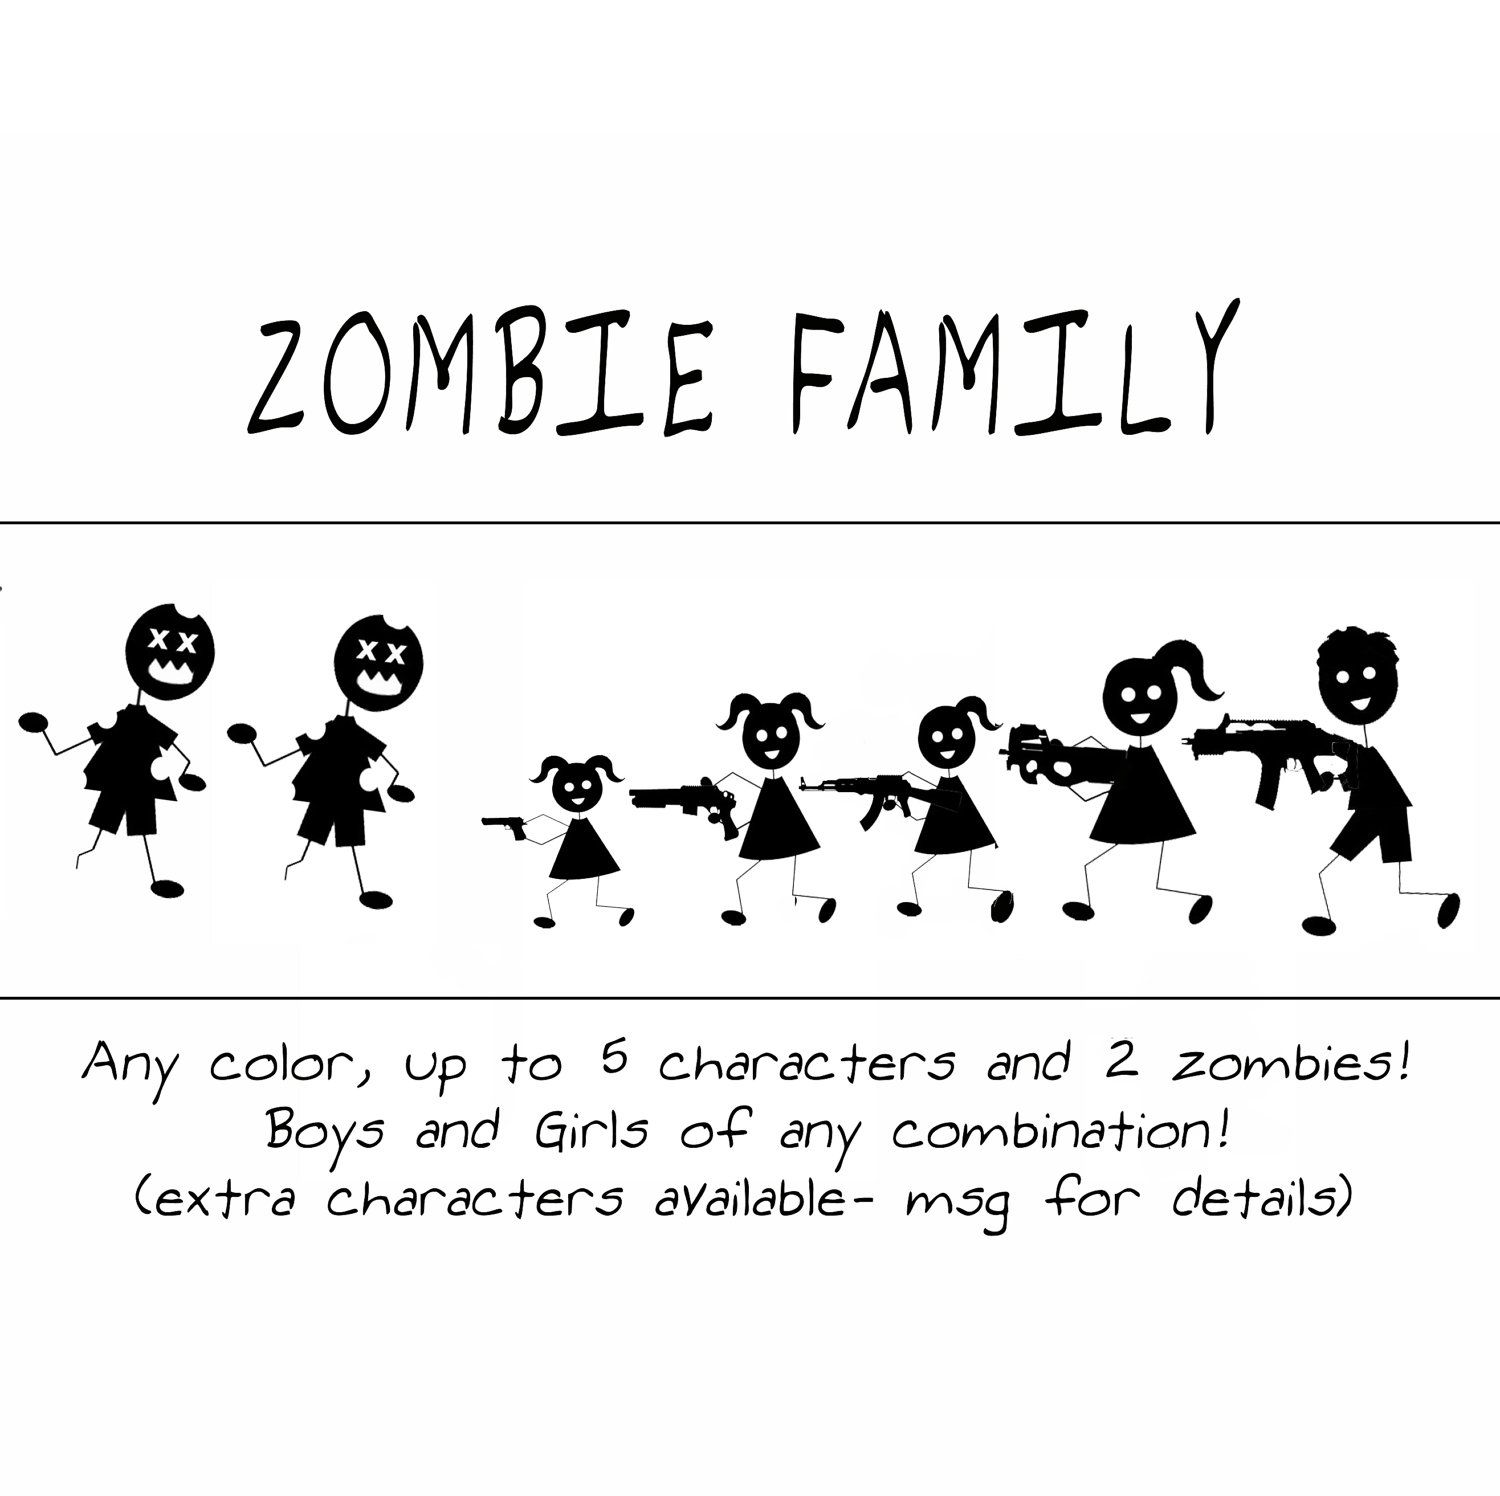 Now This Is A Stick Figure Family I Would Put On My Car Stick Figure Family Stick Figures Sticker Sign [ 1496 x 1500 Pixel ]